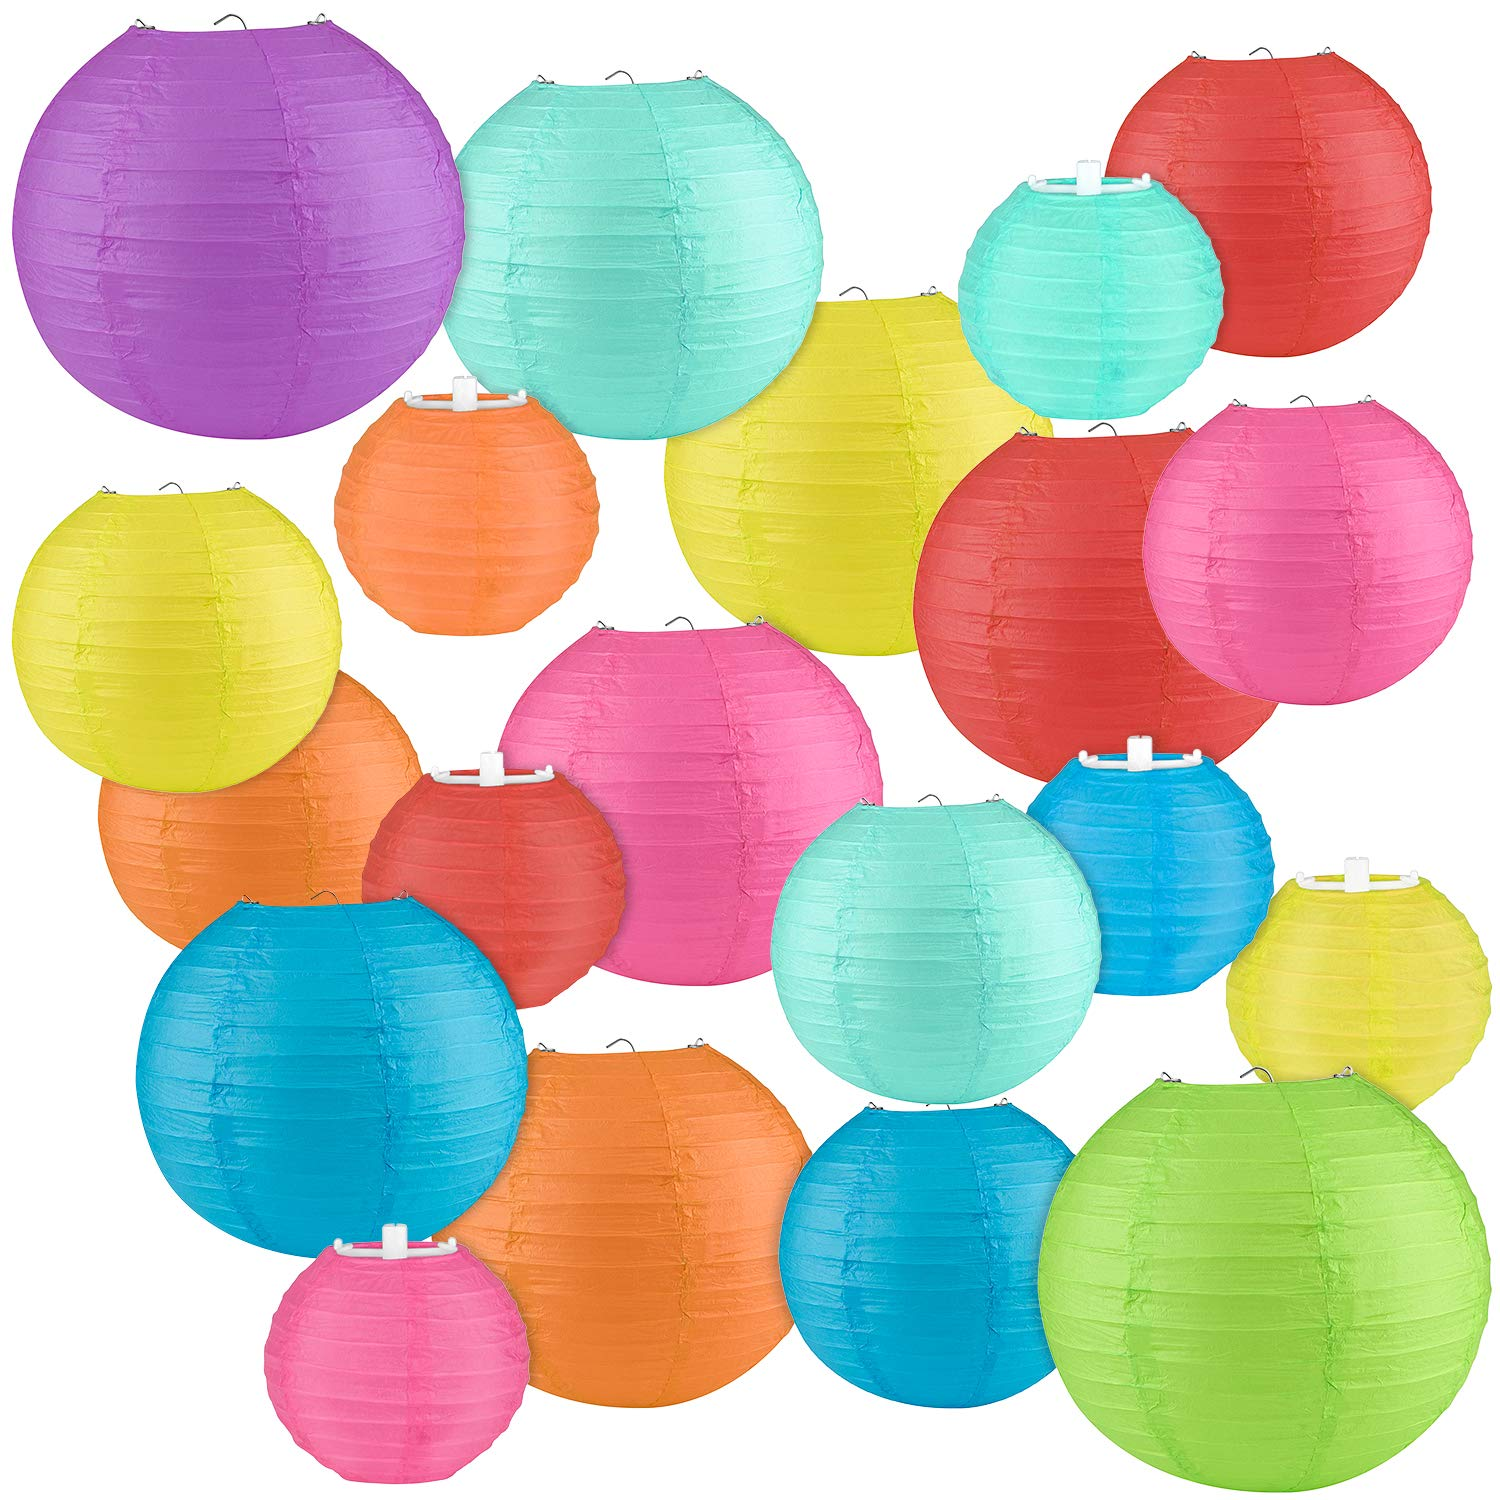 """20PCS Colorful Paper Lanterns-4"""", 6"""", 8"""", 10"""" Chinese/Japanese Paper Hanging Decorations for Home Decor, Parties, and Weddings."""